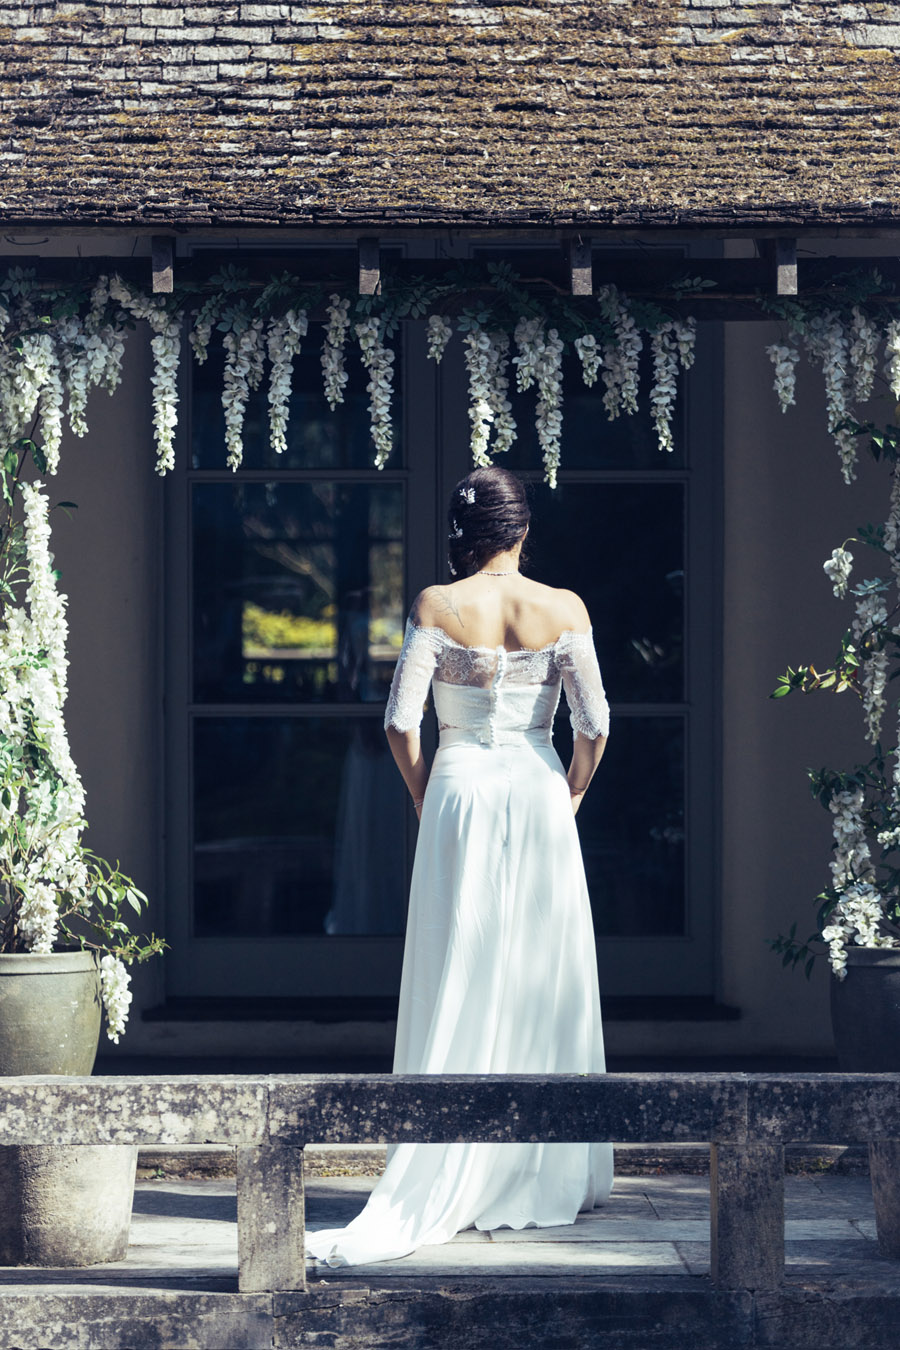 Beautiful wedding dresses in the free-spirited Matara wedding venue - photo credit Sally Anne Photography (35)